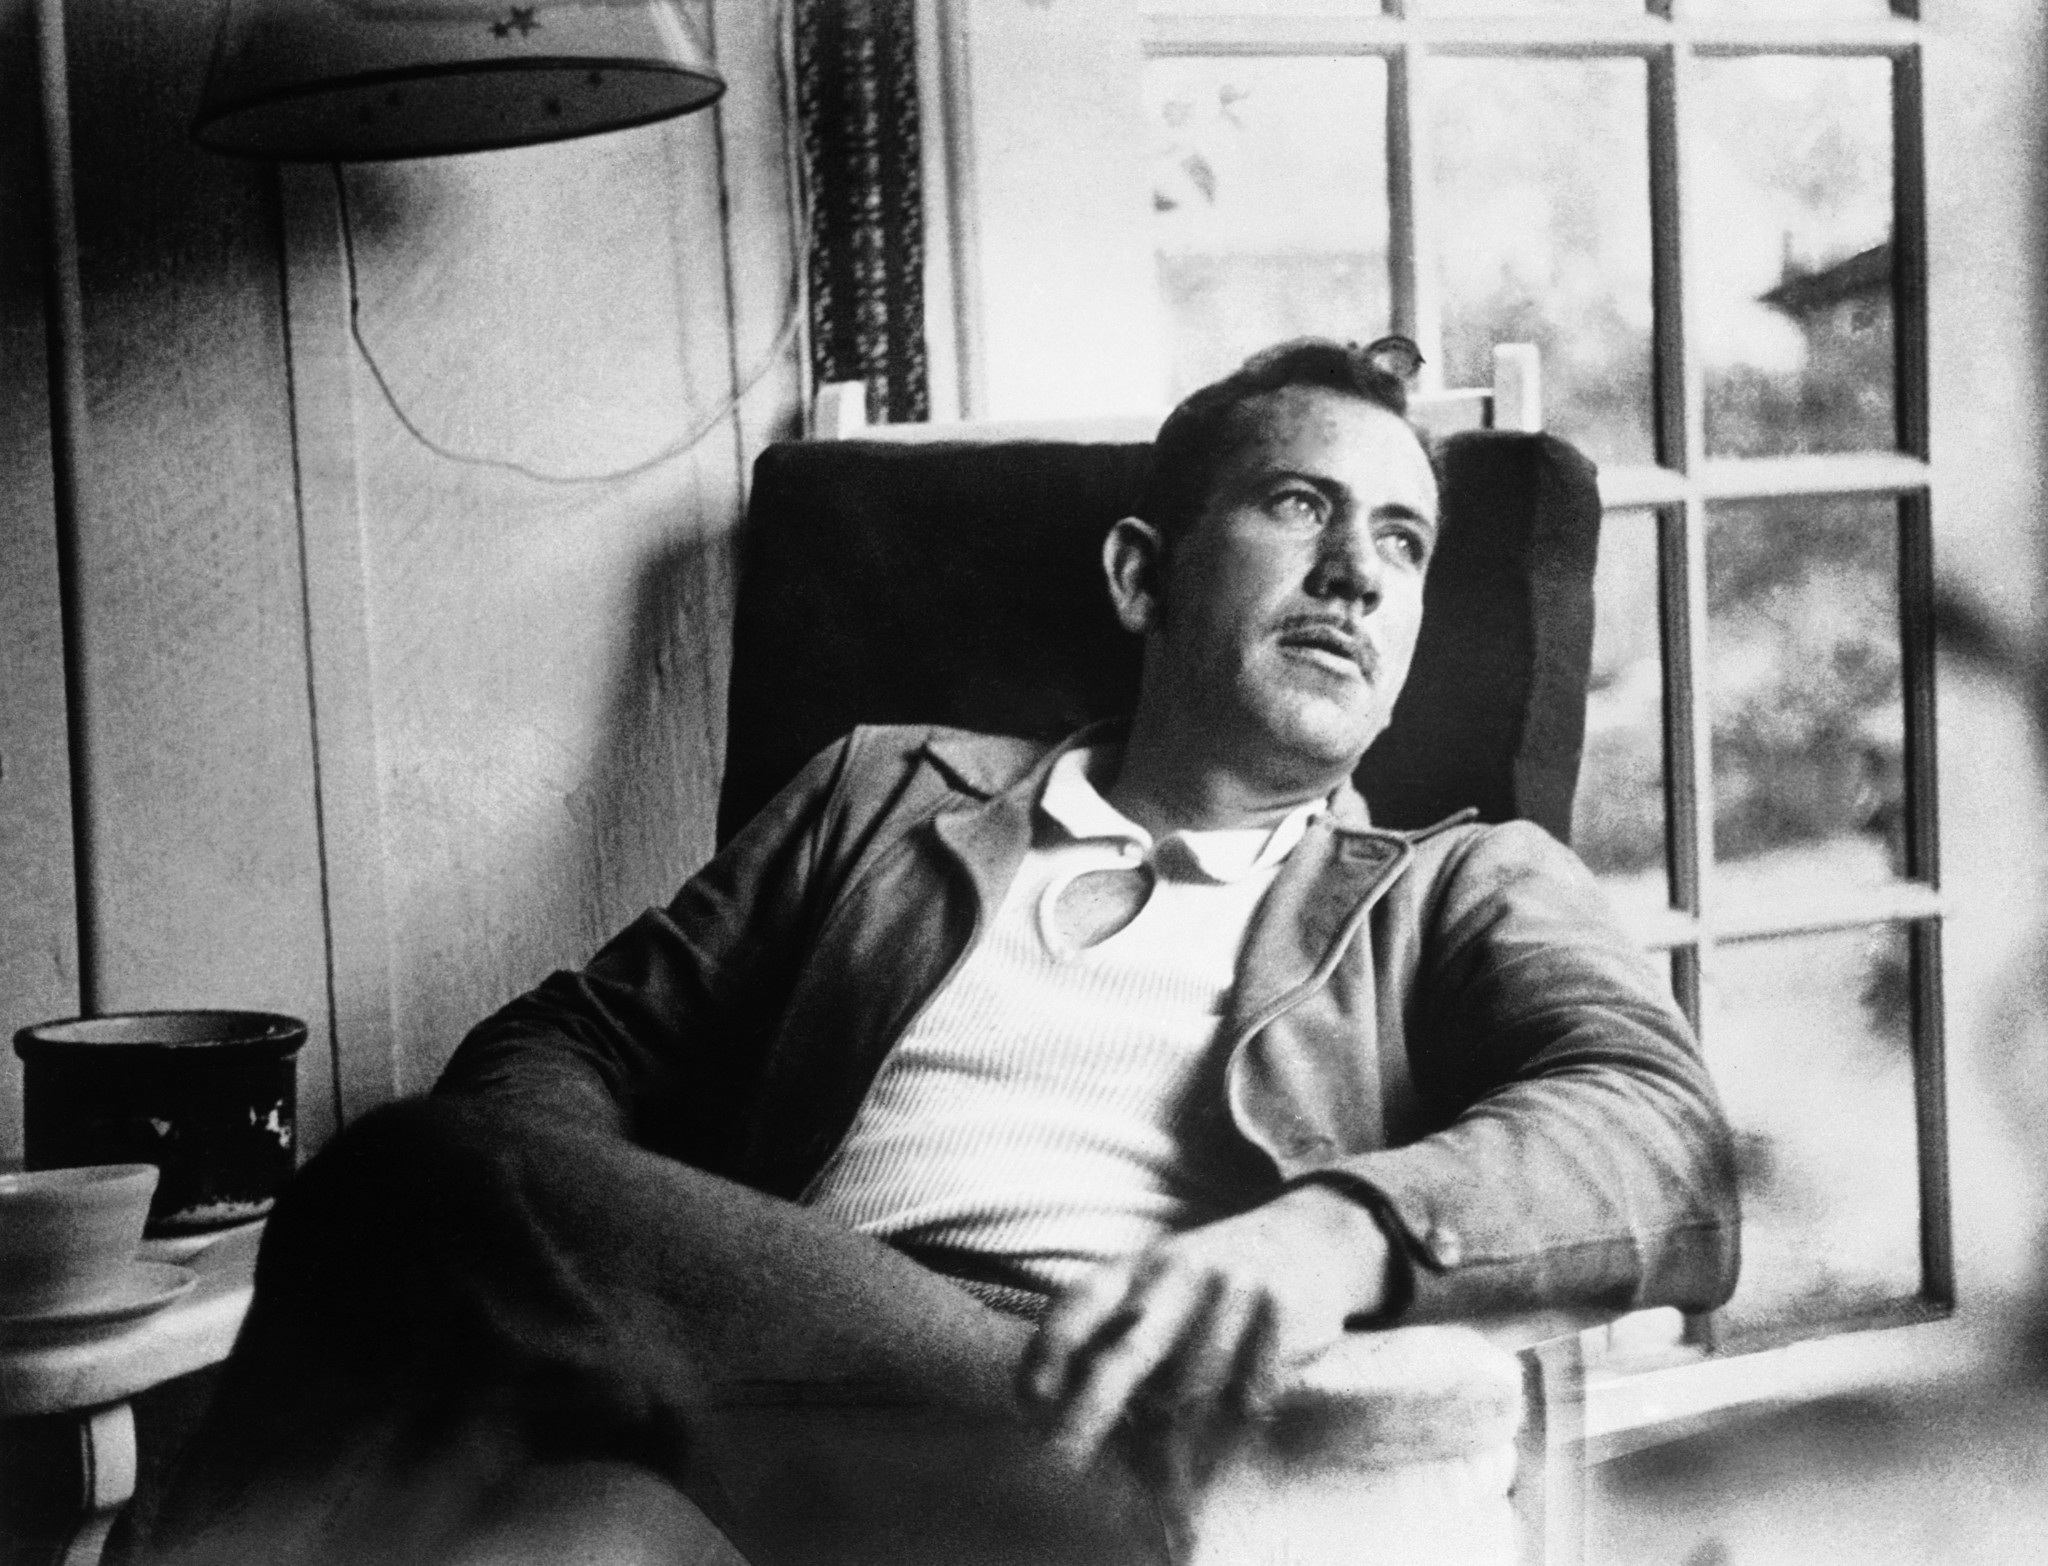 john steinbeck biography John steinbeck (1902 – 1968) john ernst steinbeck was the author of 16 novels and various other works, including five short story collections he is widely known for the novels, east of eden, of mice and men, and particularly, the puliter prize winning novel, the grapes of wrath, his masterpiece, which is one of the great american novels: it has sold more than 15 million copies so far.